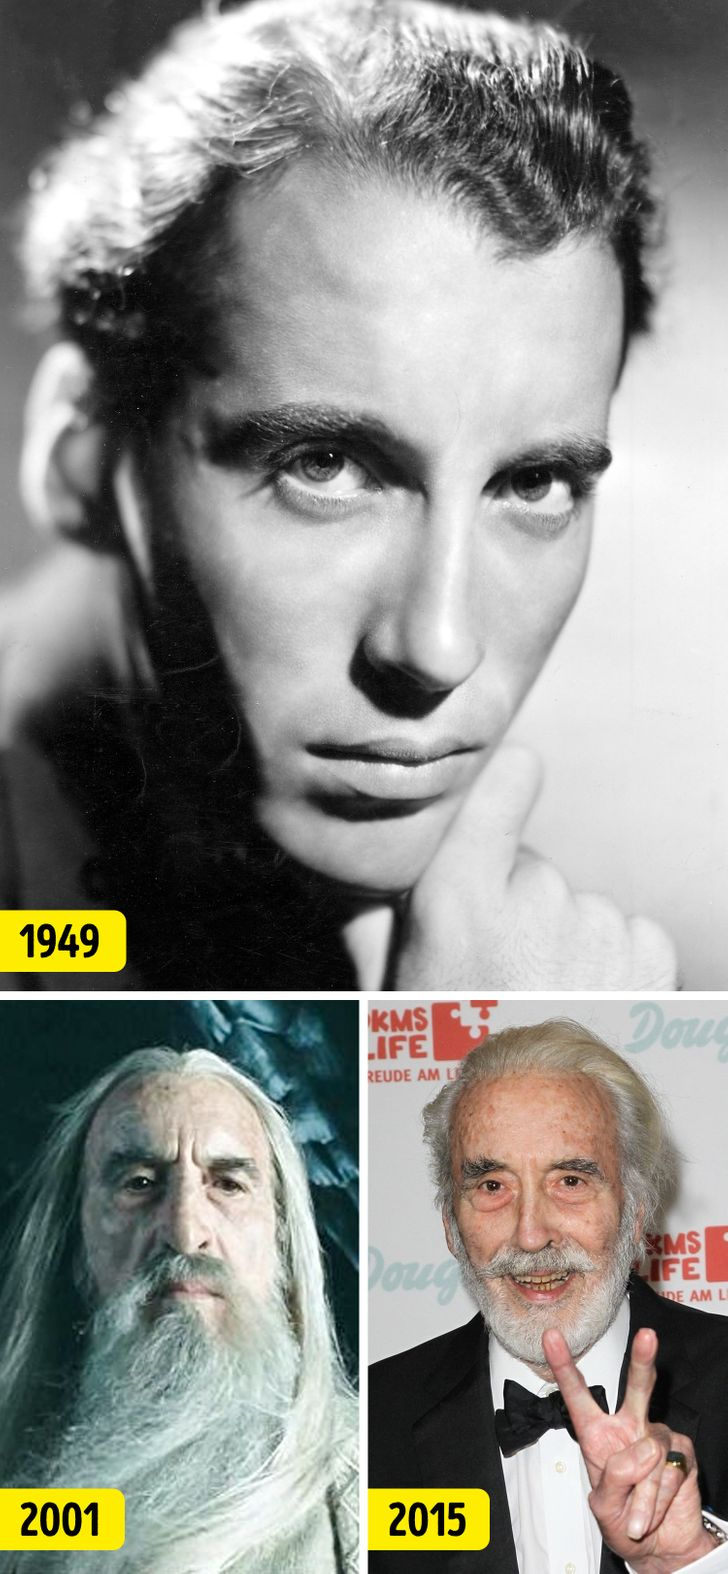 12 Wicked Movie Villains That Also Used to Be Young and Harmless